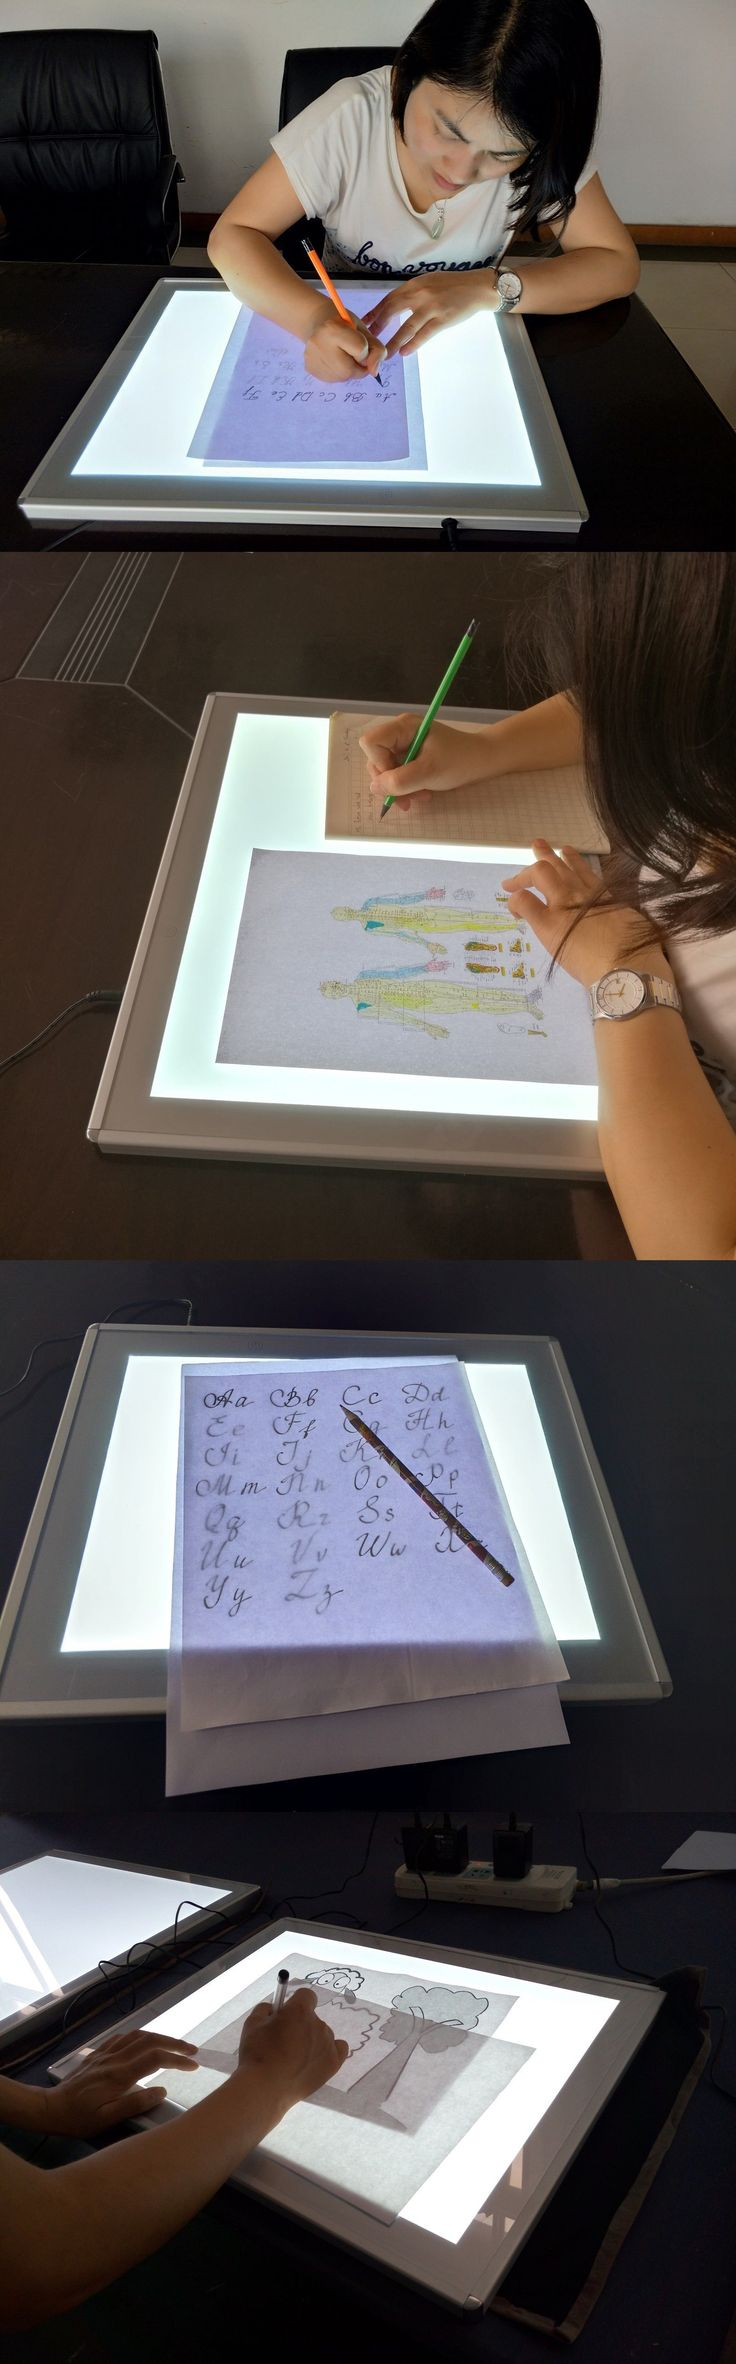 Art Projectors and Light Boxes 183086: Junlon A3 Trace Pad Aluminum Frame 12X17 Inch Light Box Light Pad For Artists -> BUY IT NOW ONLY: $92.66 on eBay!